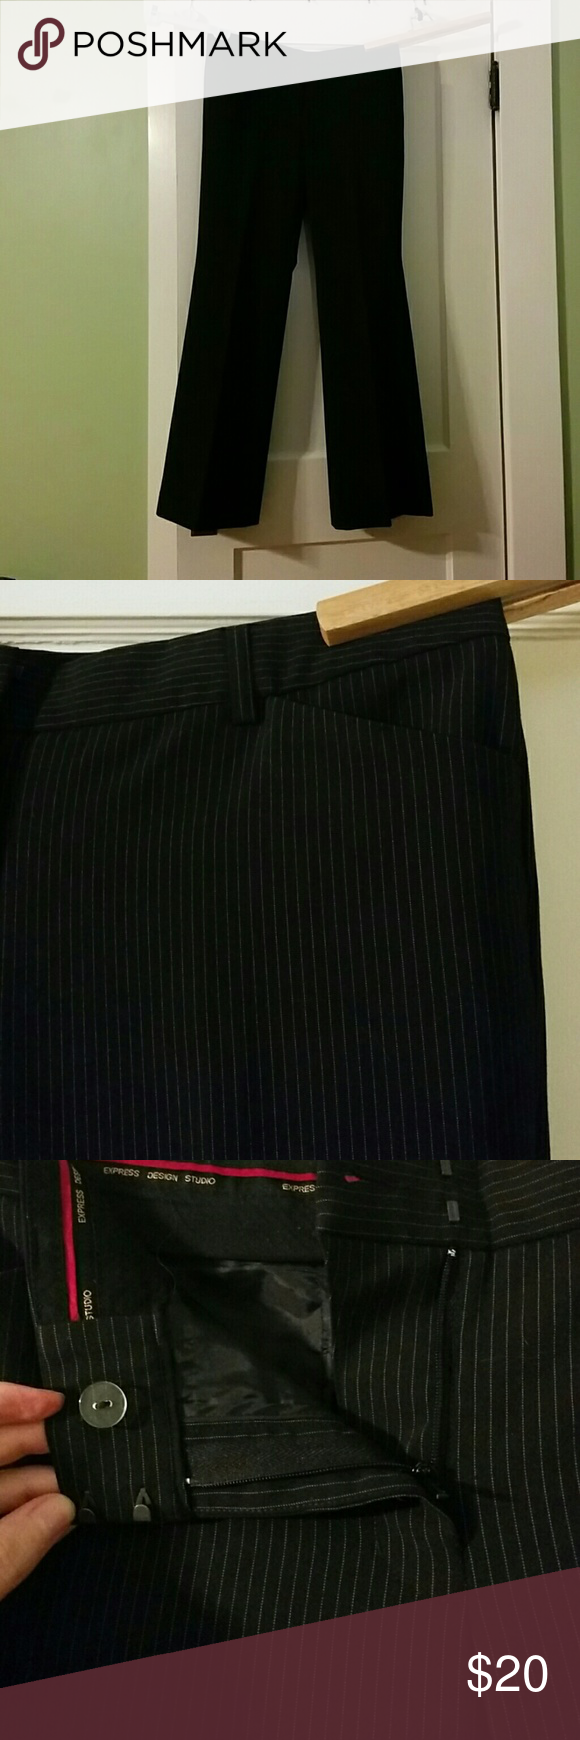 Express Black Pinstripe Pants Express Black Pinstripe Pants, Design Studio. Front zipper, hook and button closure. These are a size 10Long. Express Pants Trousers